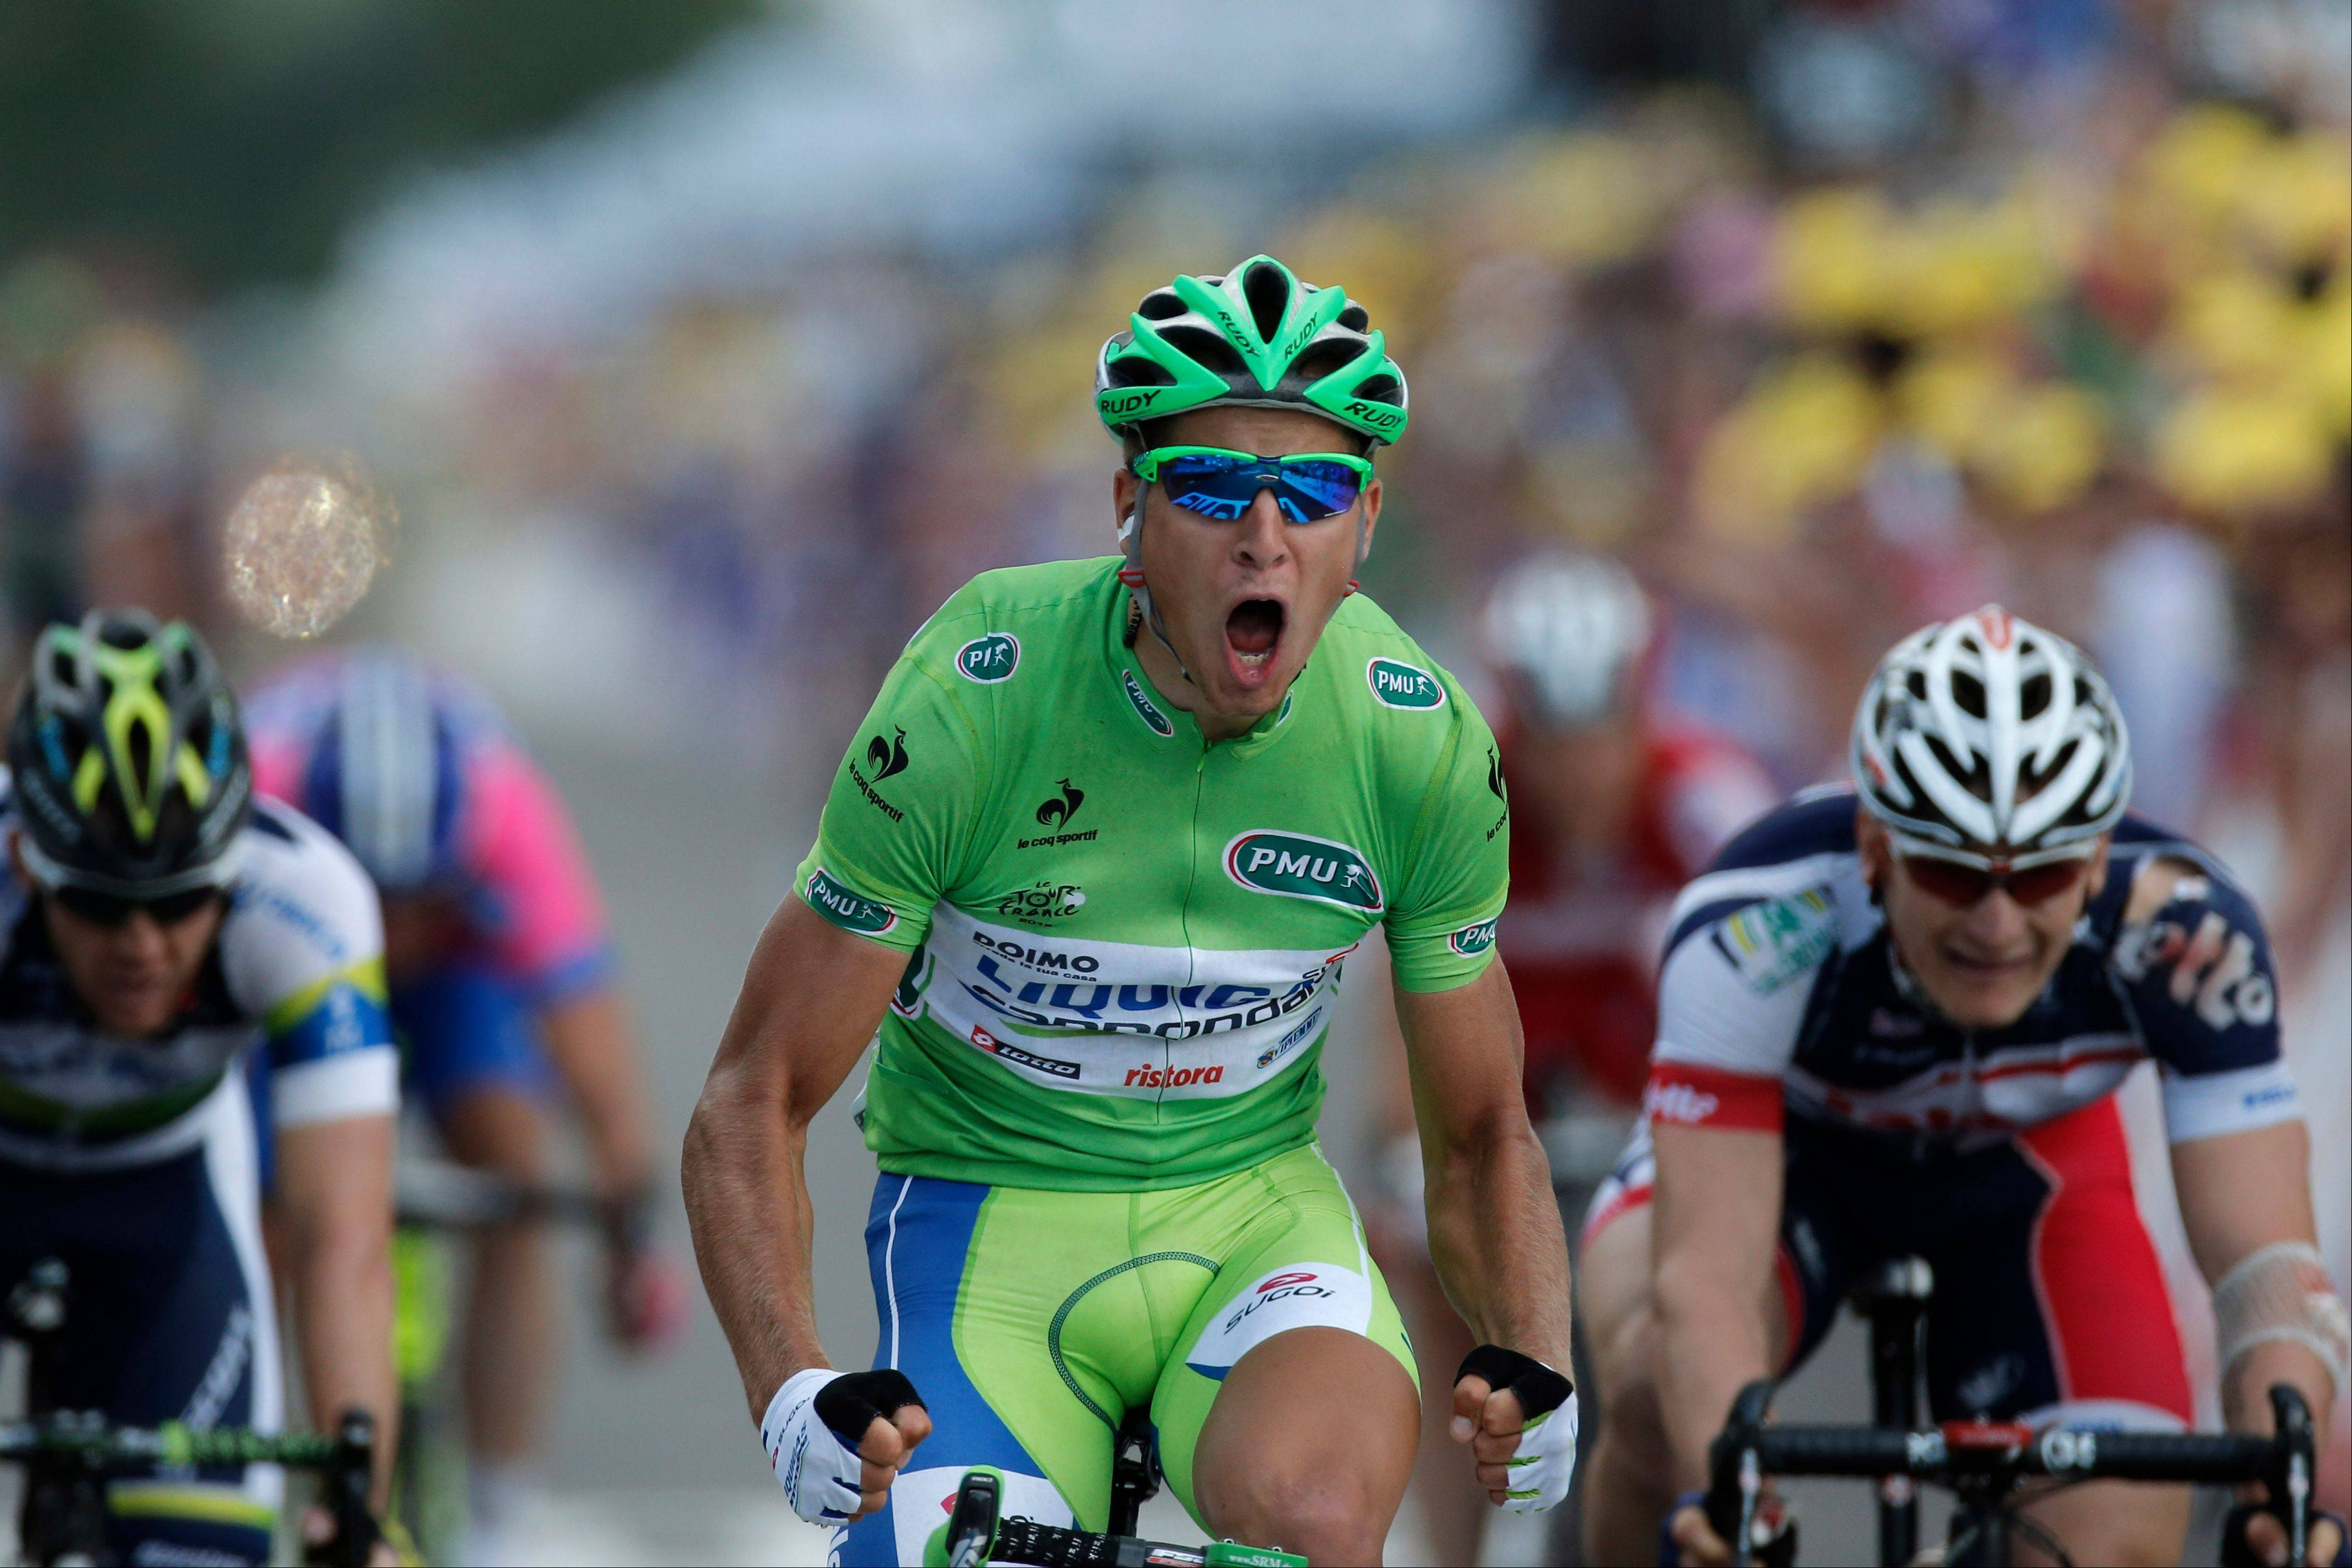 Peter Sagan won the green points jersey at last year's Tour de France.